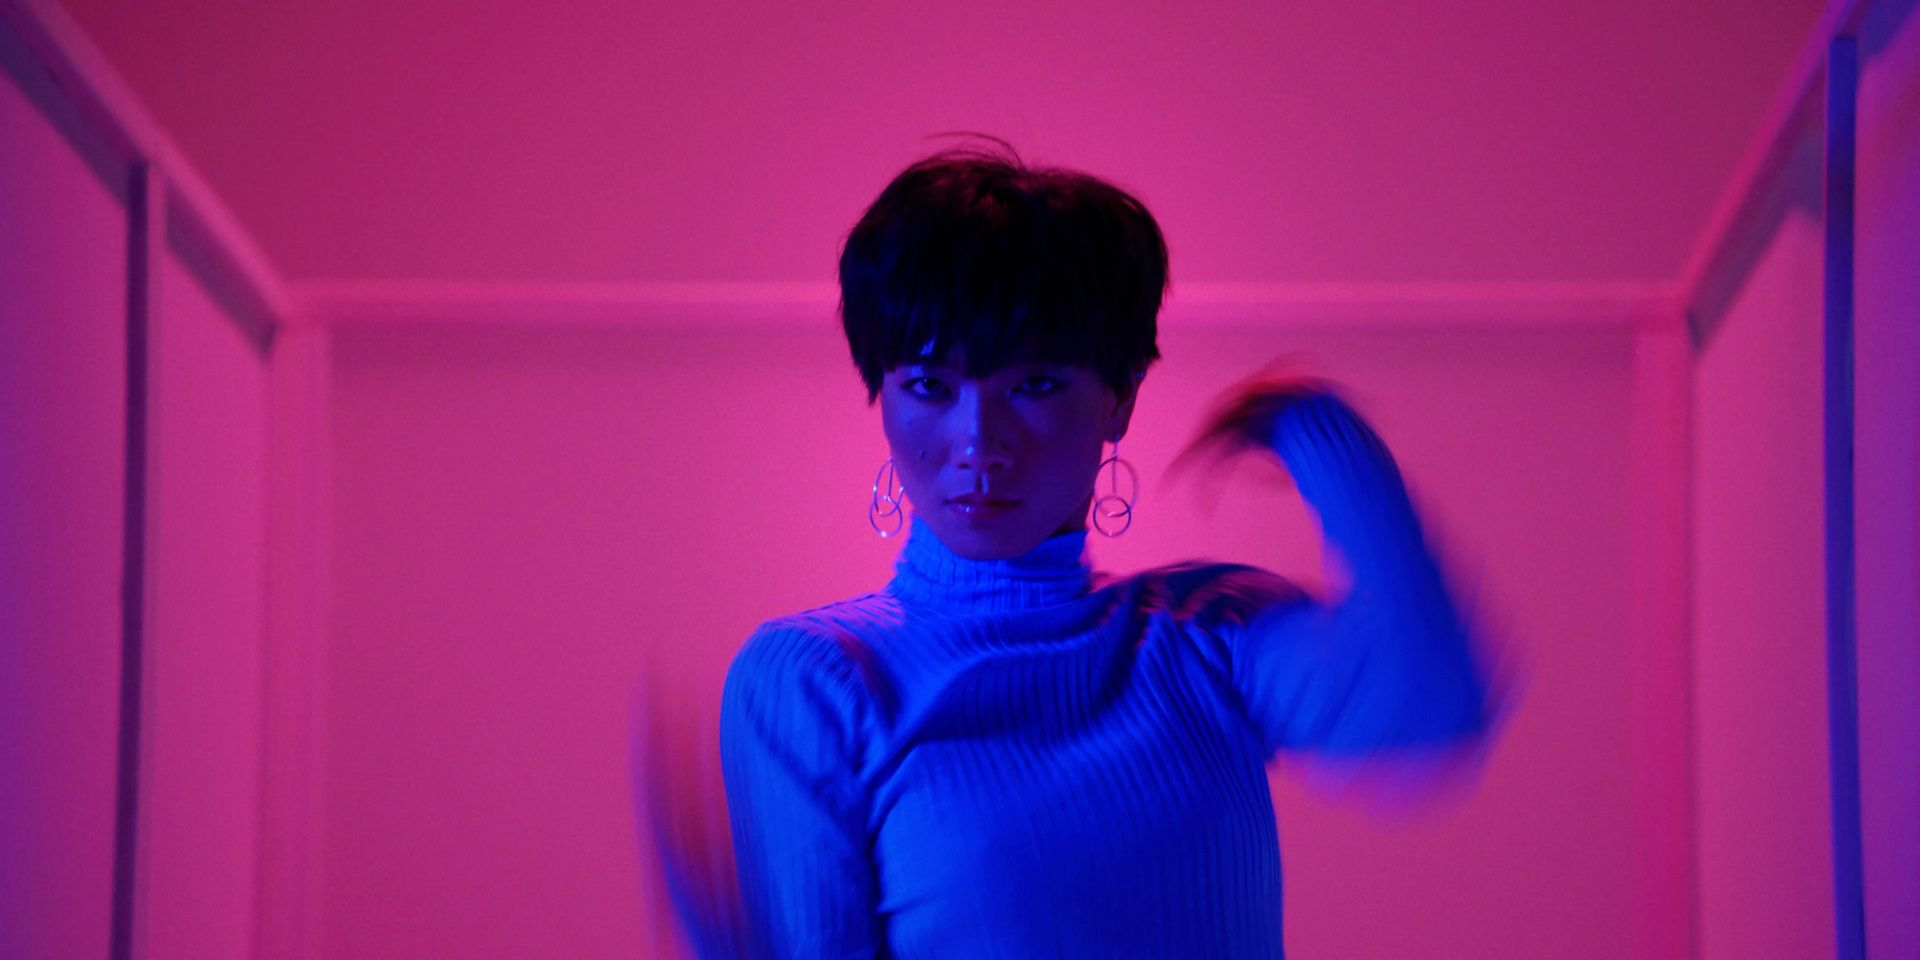 asian female dancer in pink lighting by Simon Duhamel for It's Coming Down for Fabrikate